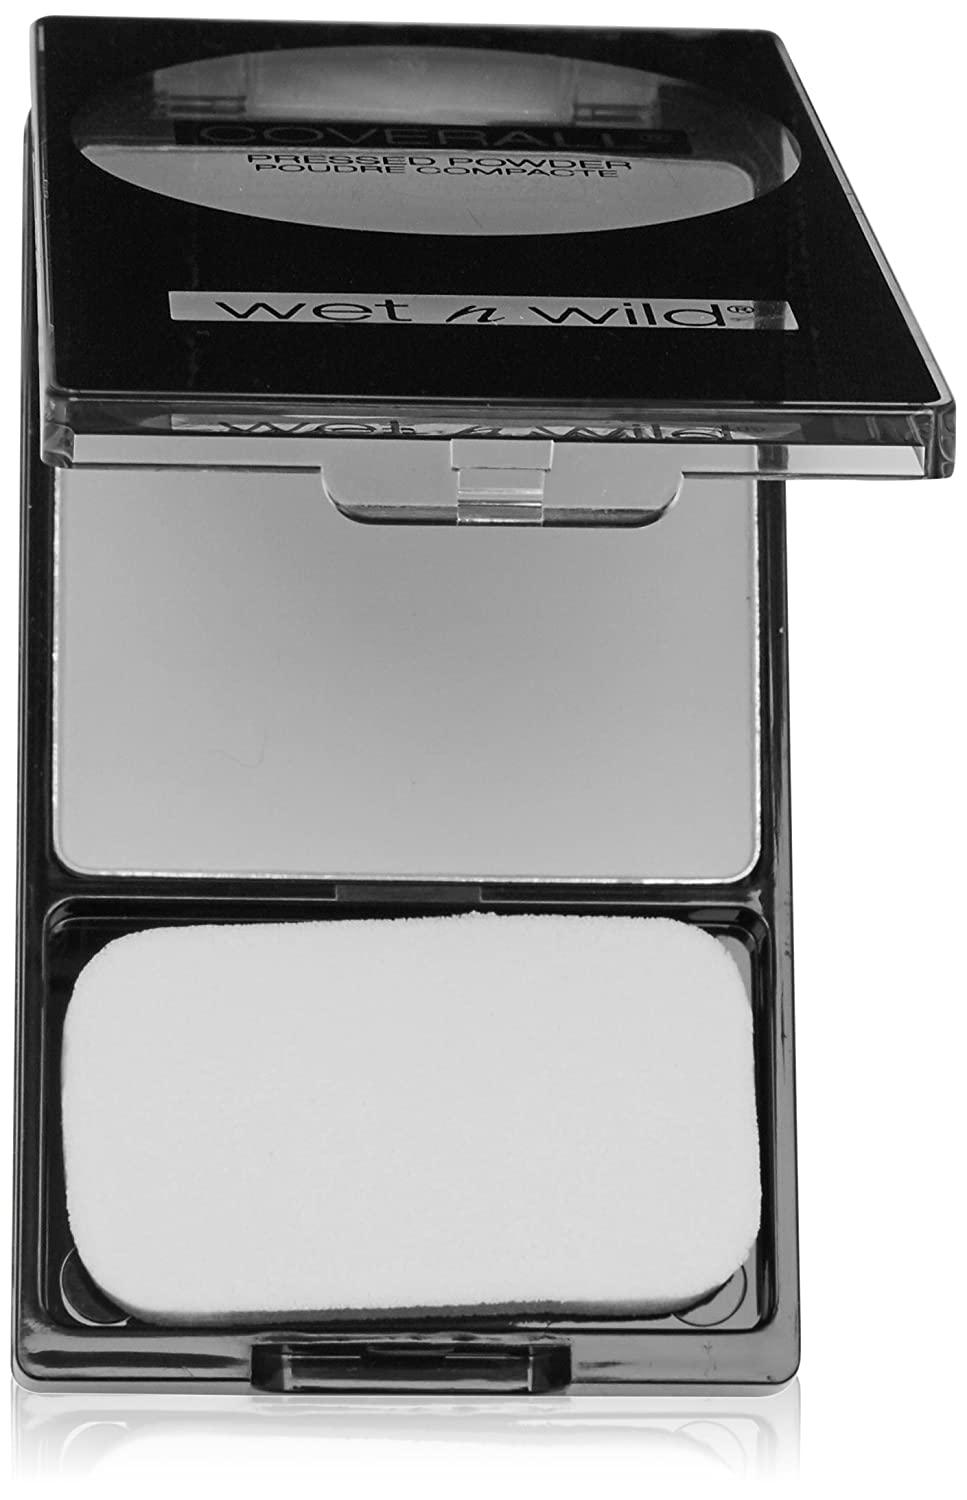 Wet n' Wild Coverall Pressed Powder 823B Light B00AYOR9OW